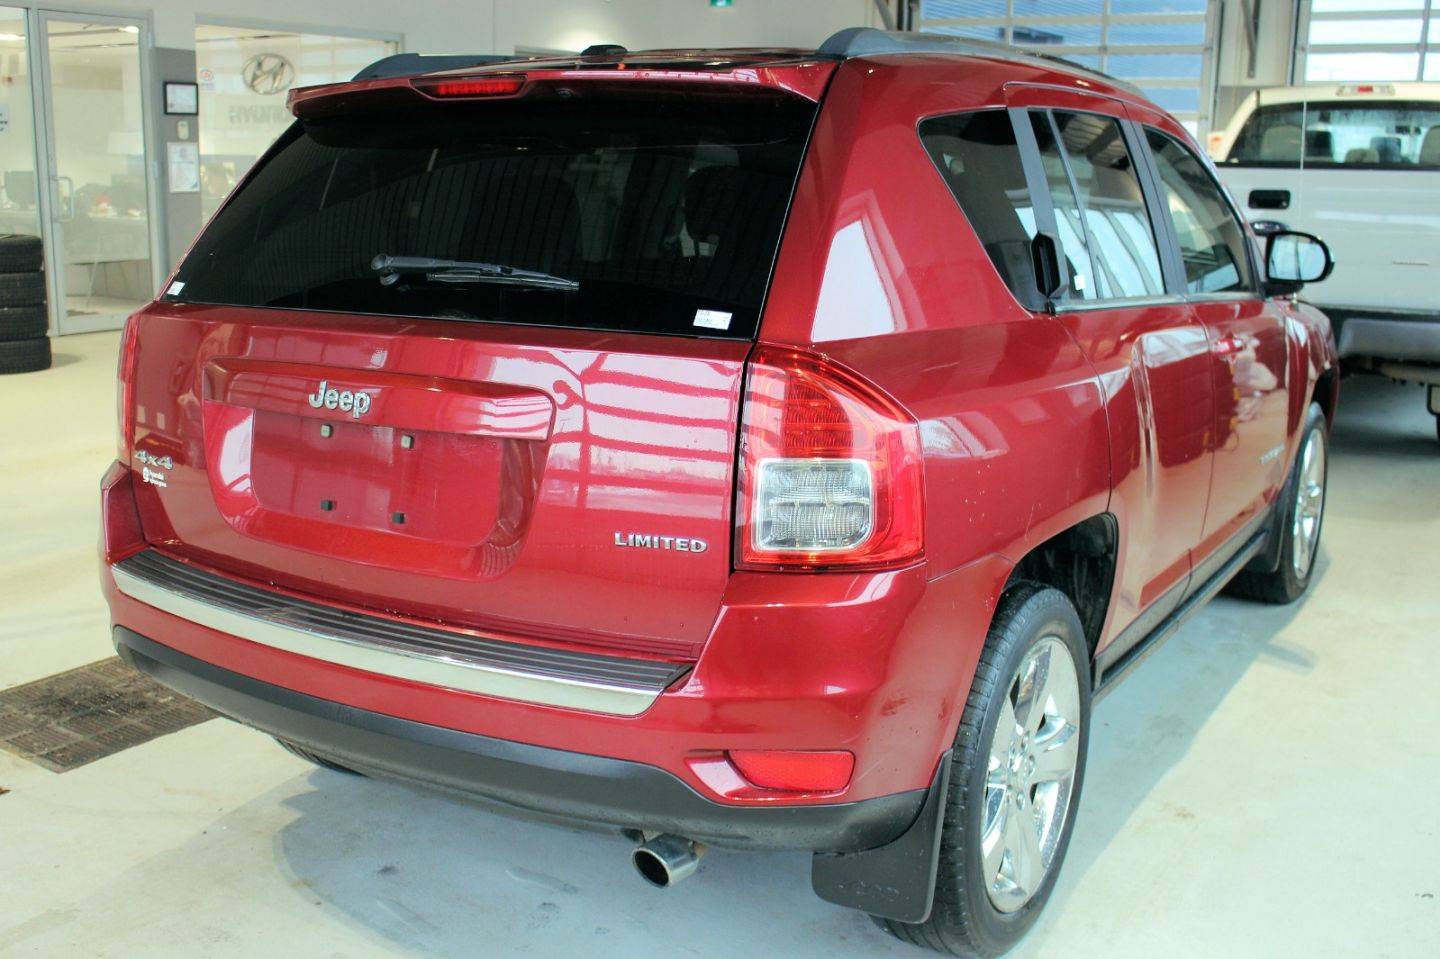 2012 Jeep Compass Limited for sale in Spruce Grove, Alberta